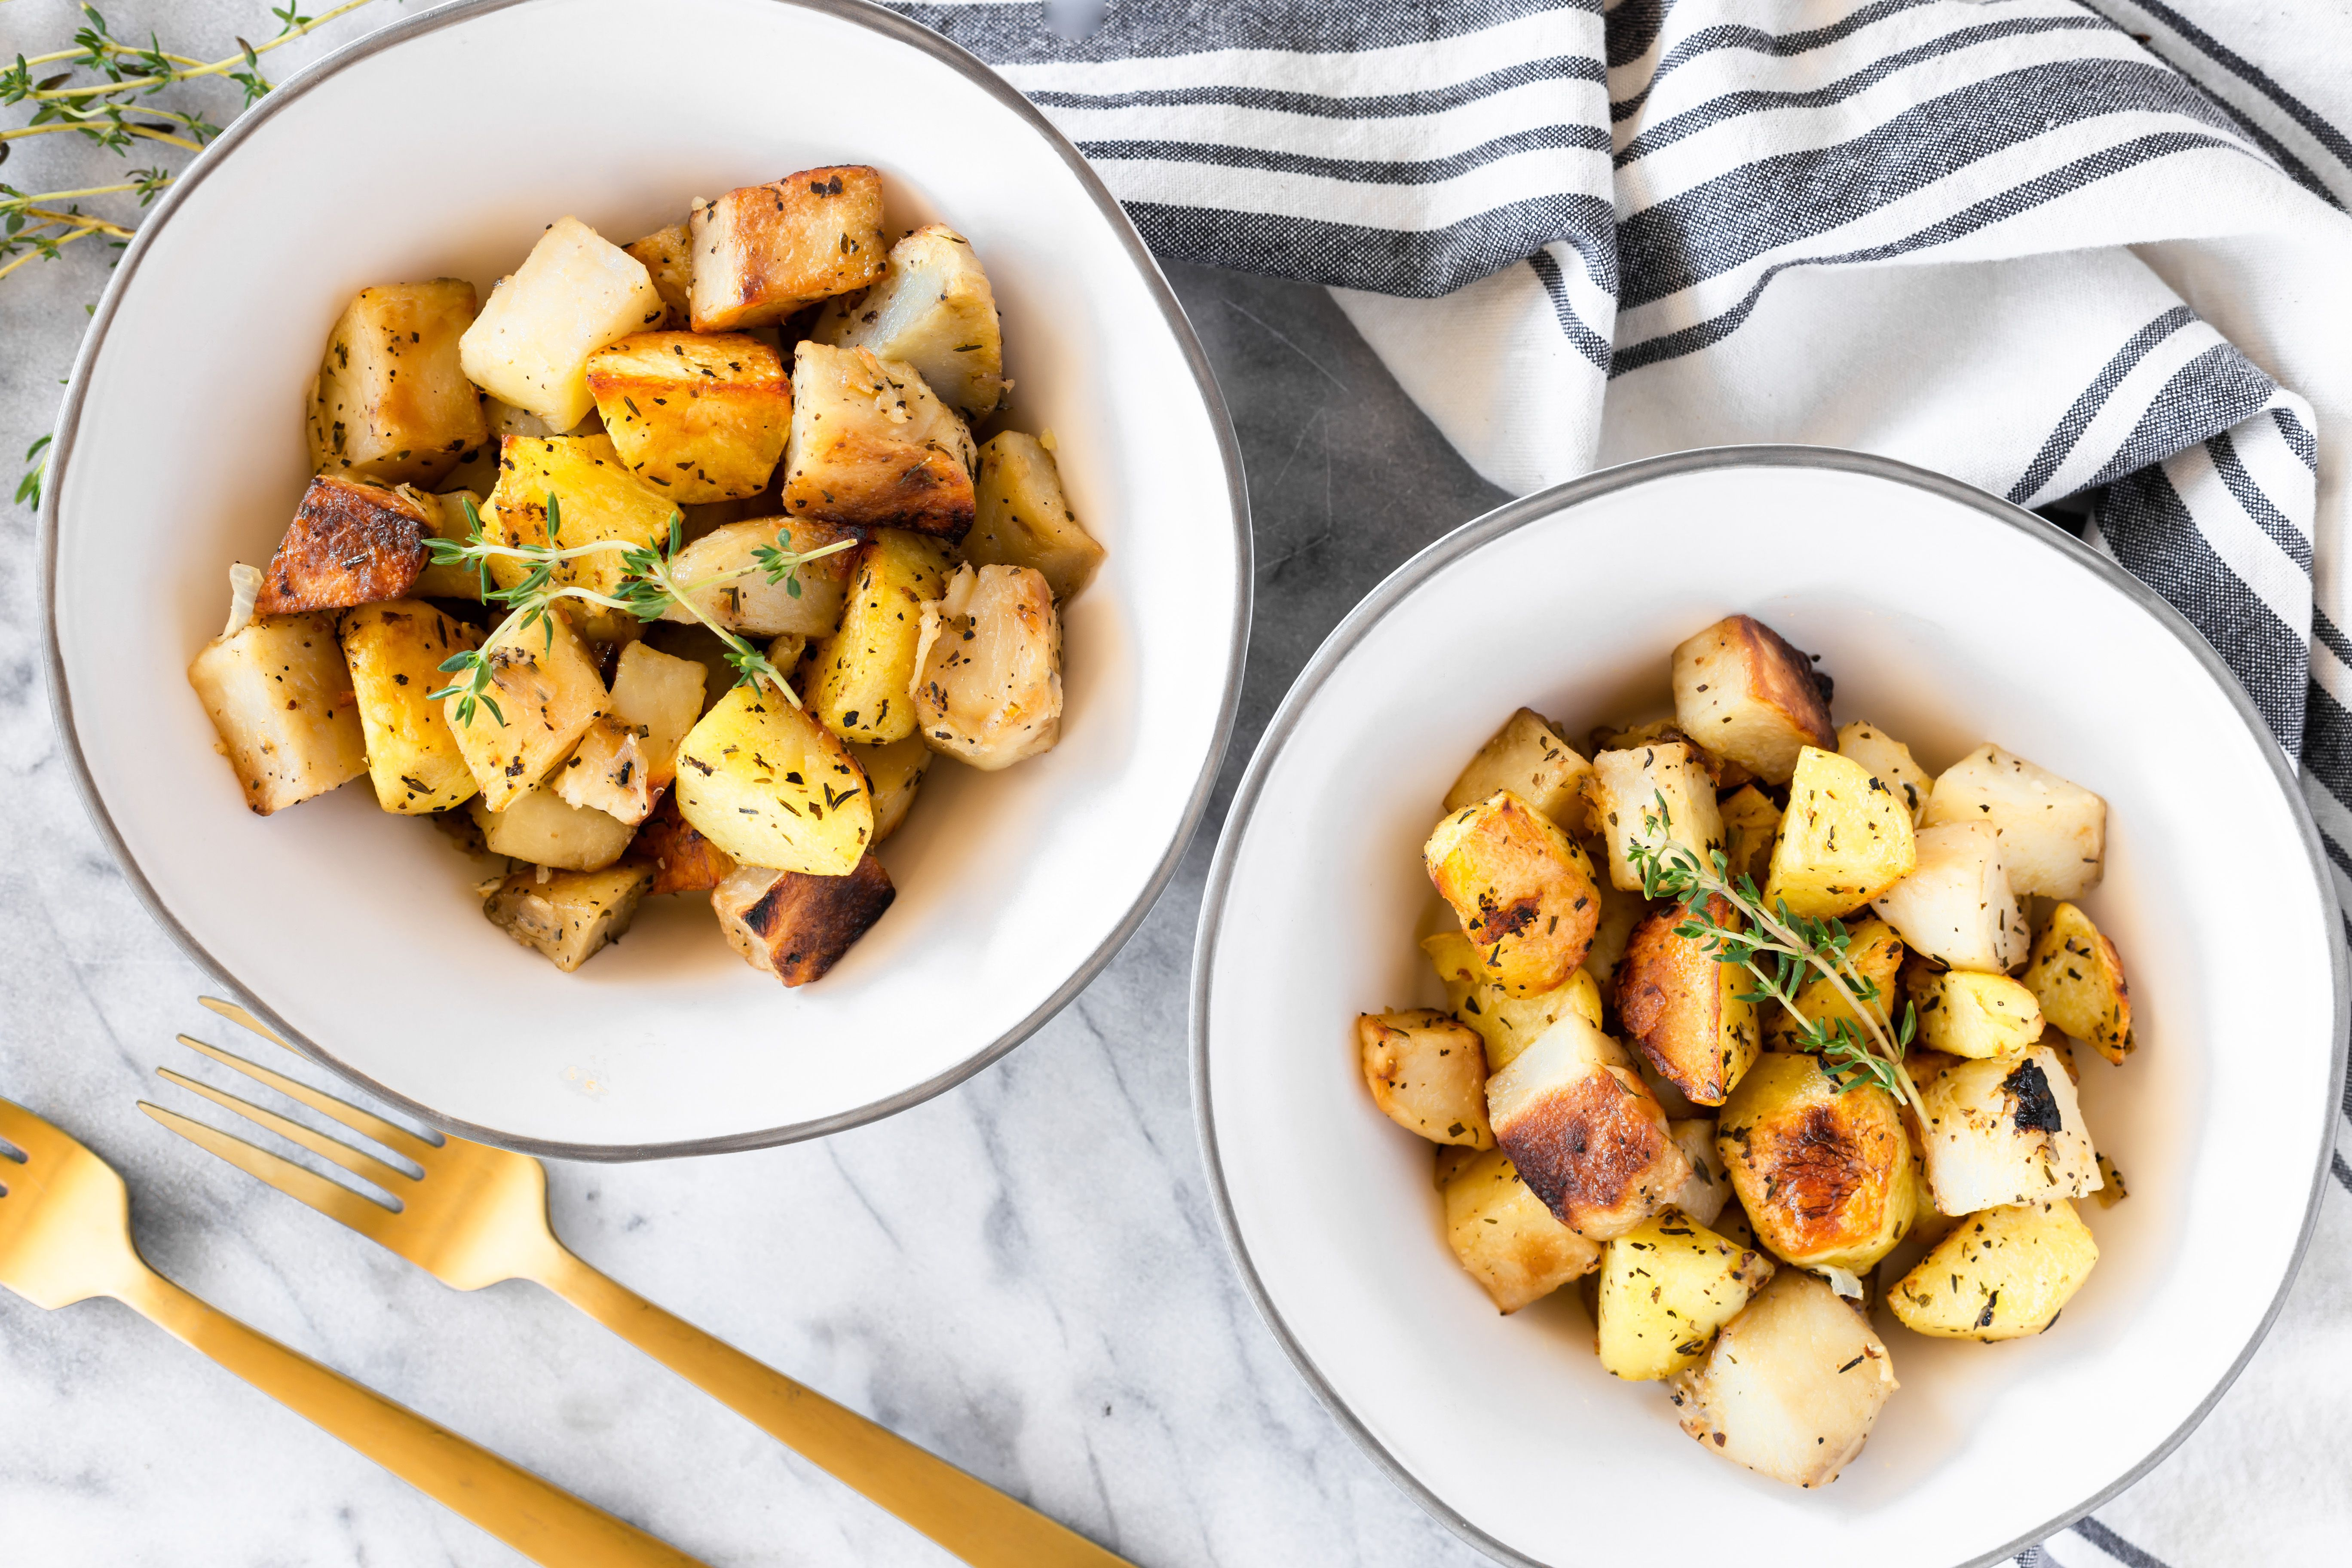 How to Choose the Right Potato for Your Recipe